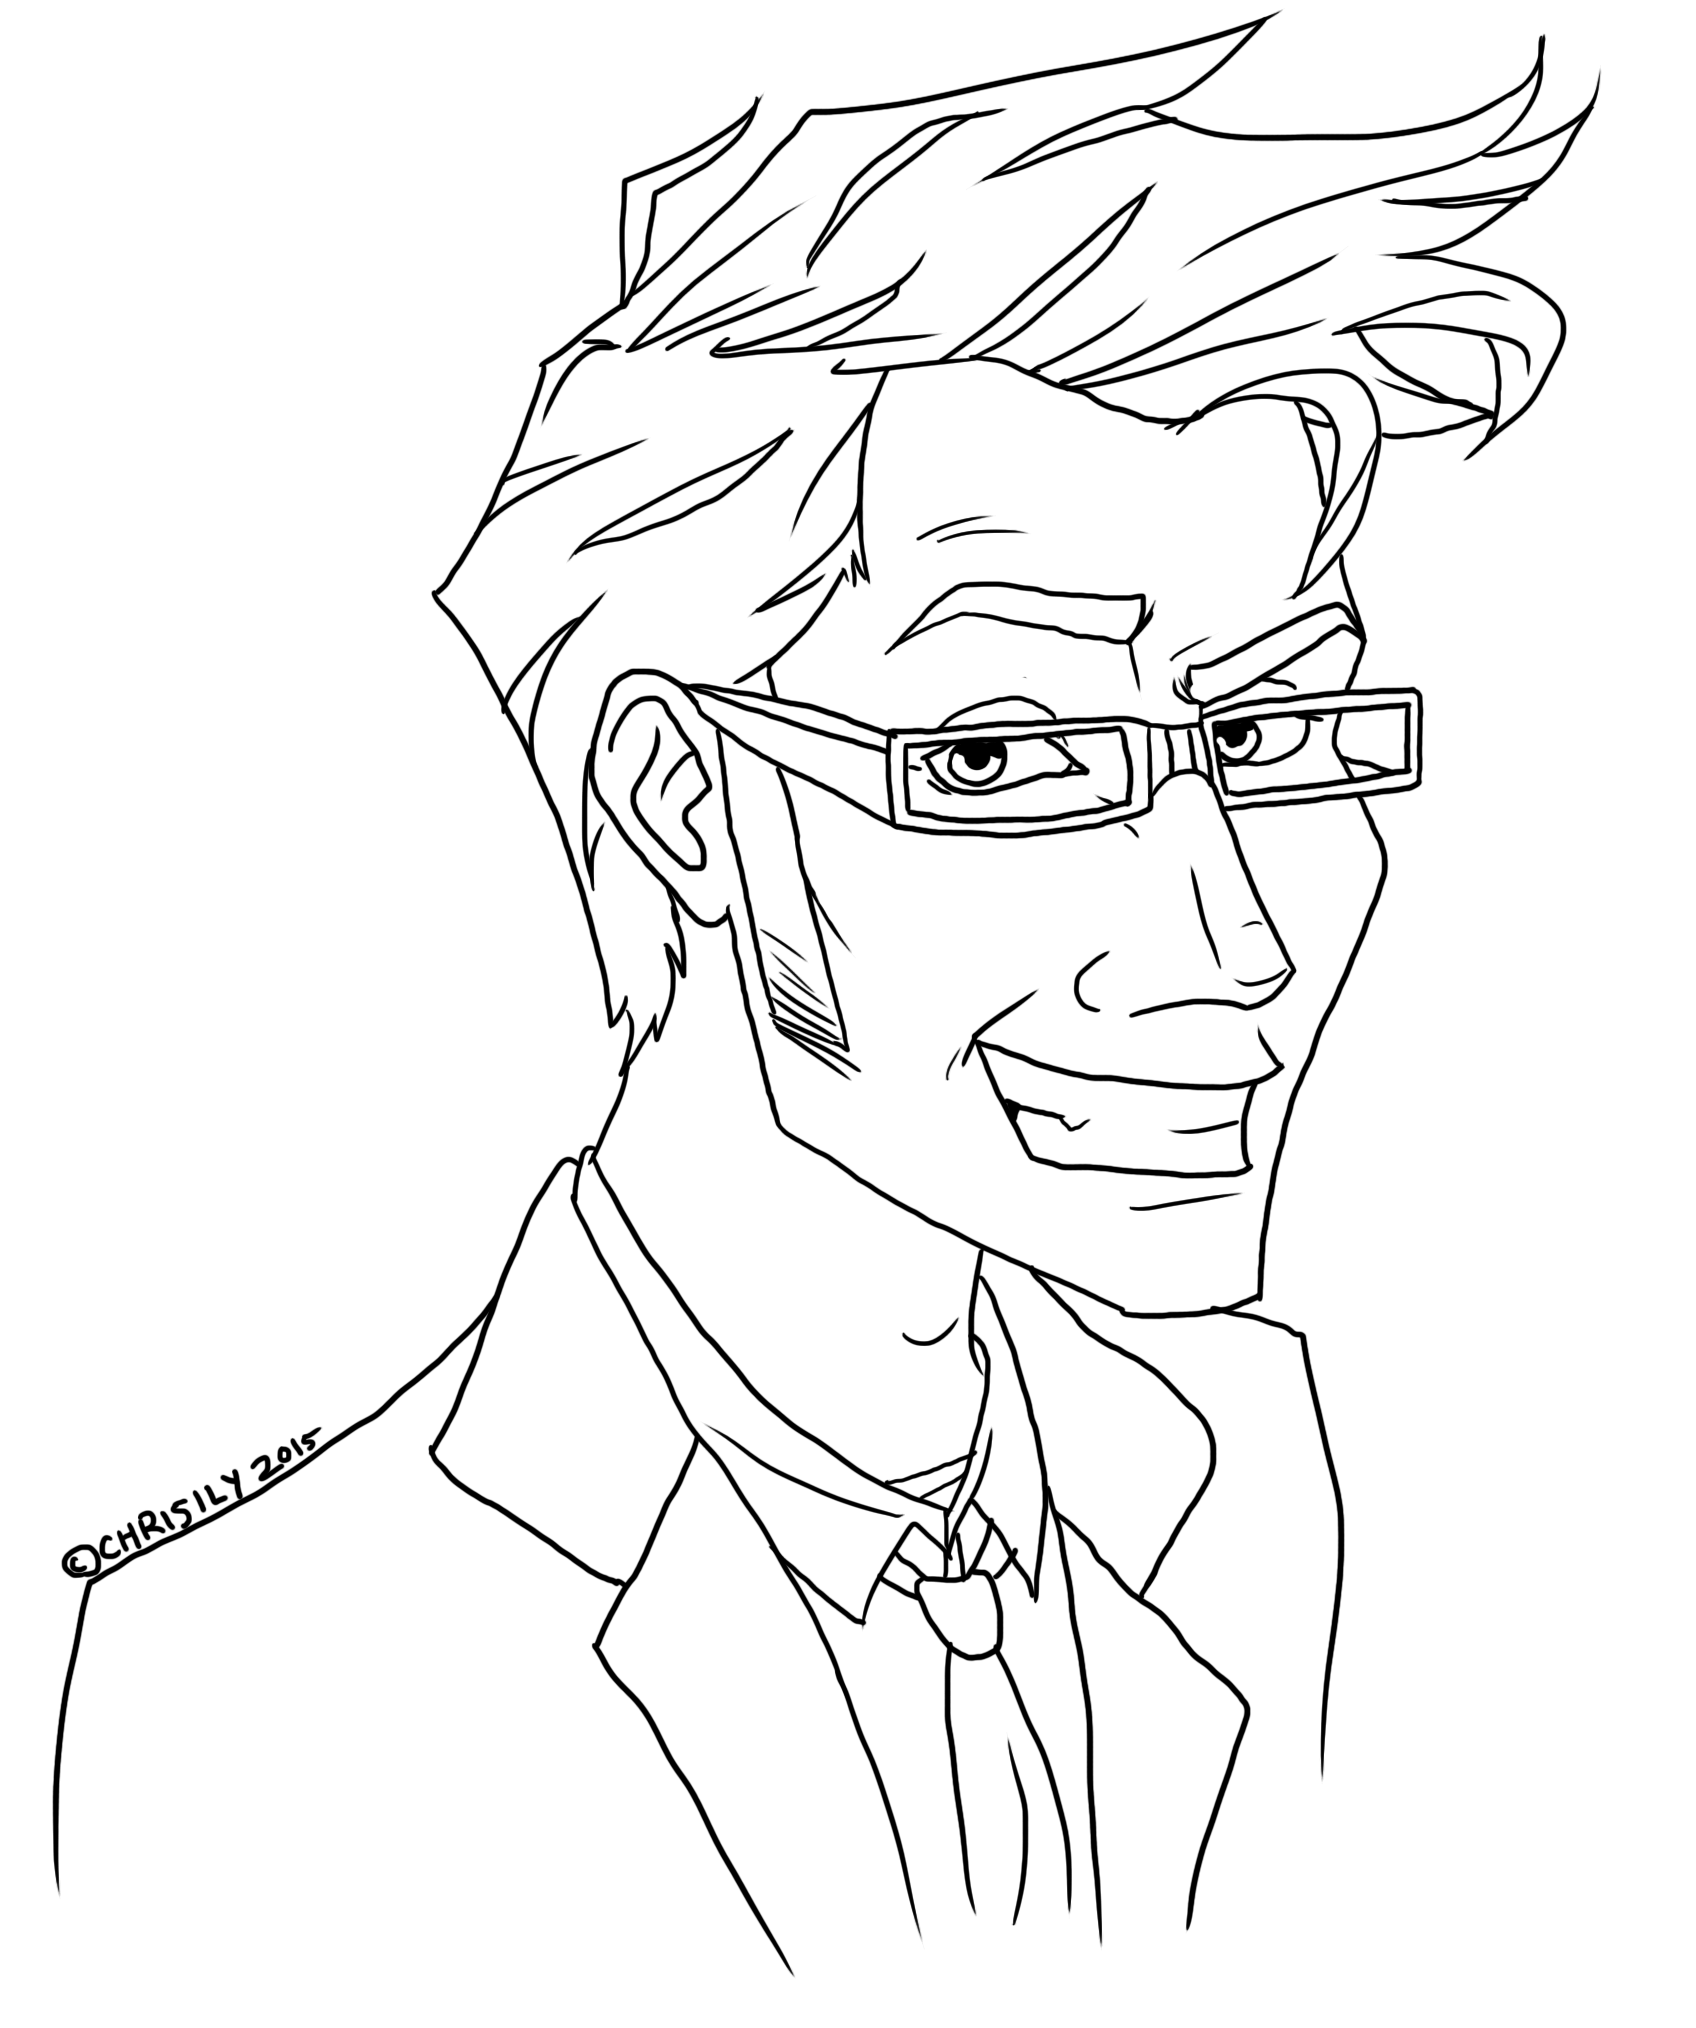 Xfig Line Drawing : Free th doctor lineart by chrisily on deviantart